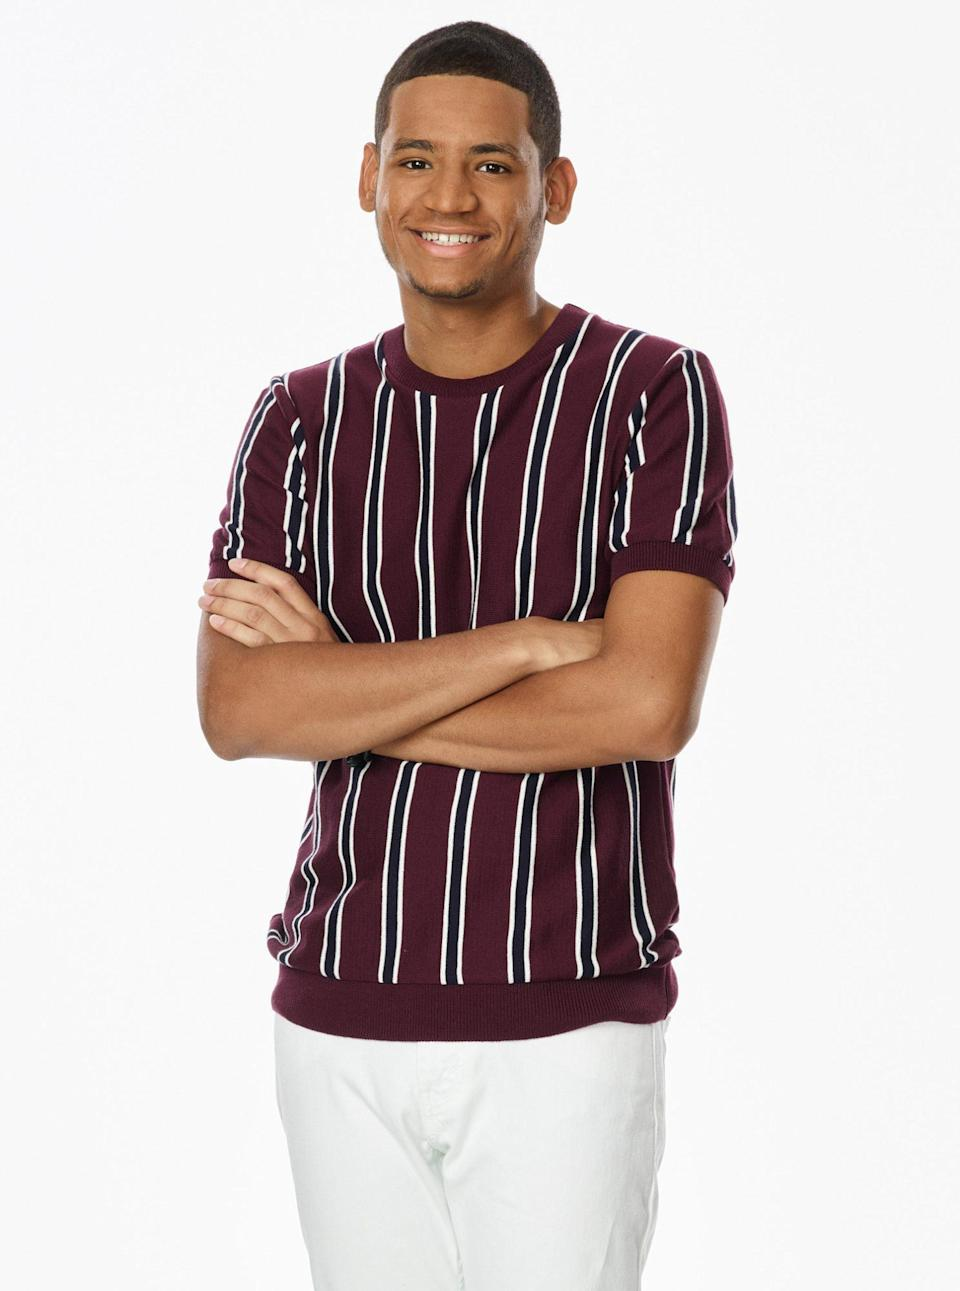 """<p><strong>Age:</strong> 19</p> <p><strong>Hometown:</strong> New York, New York</p> <p><strong>Resident:</strong> McAllen, Texas</p> <p>Garcia was born with music in his blood. His father is a Spanish musician and inspired him to learn the guitar at 6 years old. After he started singing to accompany his guitar playing, Garcia decided to showcase his skills for the first time at his seventh grade talent show. With some encouragement from his friends, Garcia knew he had to pursue his love for music and began songwriting. Three years ago, he got the chance to tour with his dad around the U.S., Colombia and Mexico, which only reinforced his love for performing. Garcia comes to <em>The Voice</em> to prove he is ready for the spotlight. </p> <p>""""I'm super excited to have the chance to work with the coaches,"""" he says. """"The experience of having chairs turned for me was like no other because it helped me prove to myself that I have what it takes to make it big.""""</p>"""